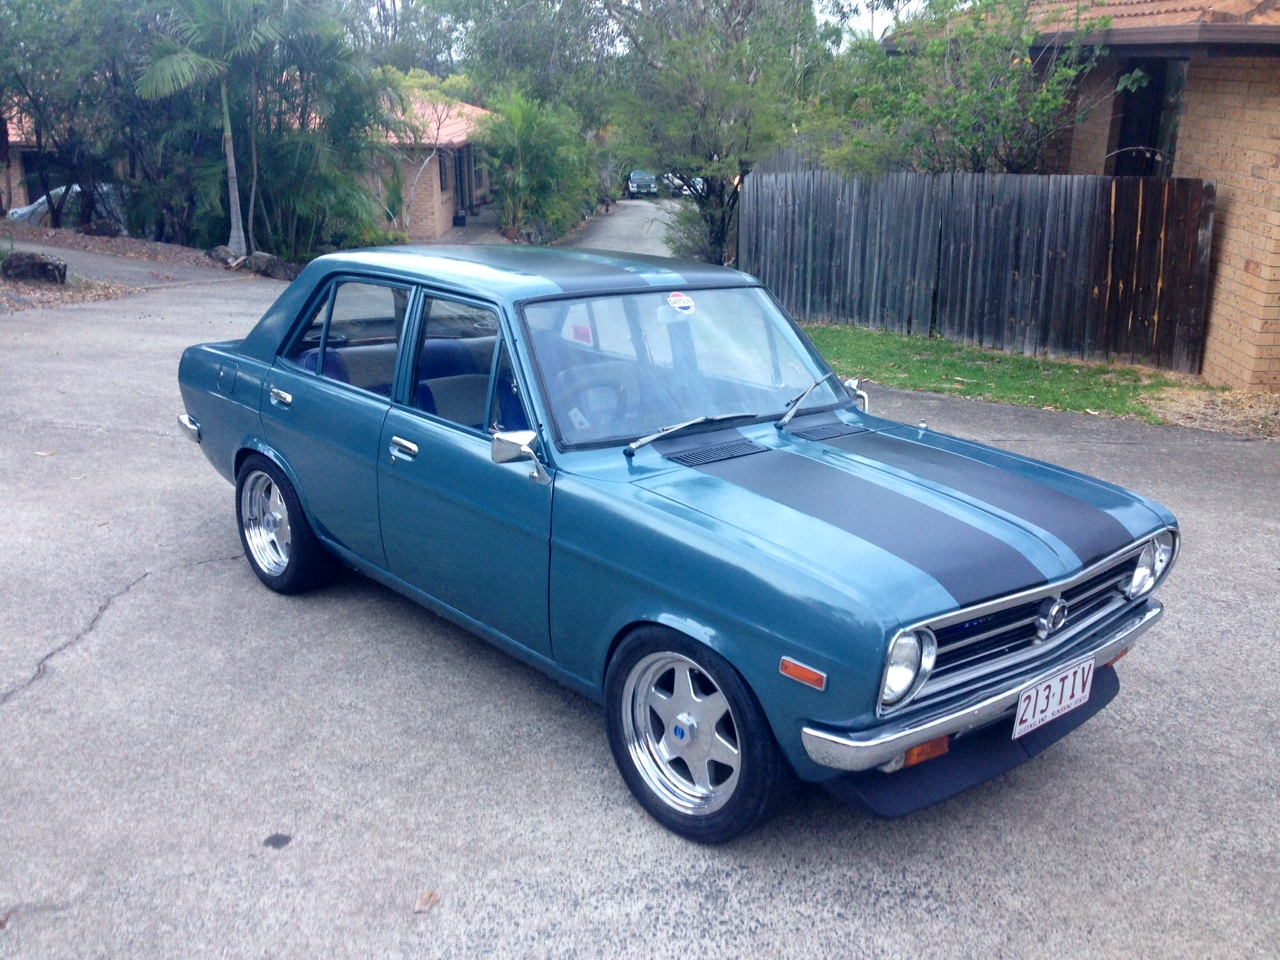 152167 1982 Datsun Kingcab 720 4x4 also  in addition 2431990 1970 Datsun 1200 For Sale moreover Honda Civic 5 Doors 2008 together with 2005 Volkswagen Newbeetle Fuse Box Diagram. on datsun fuel pump